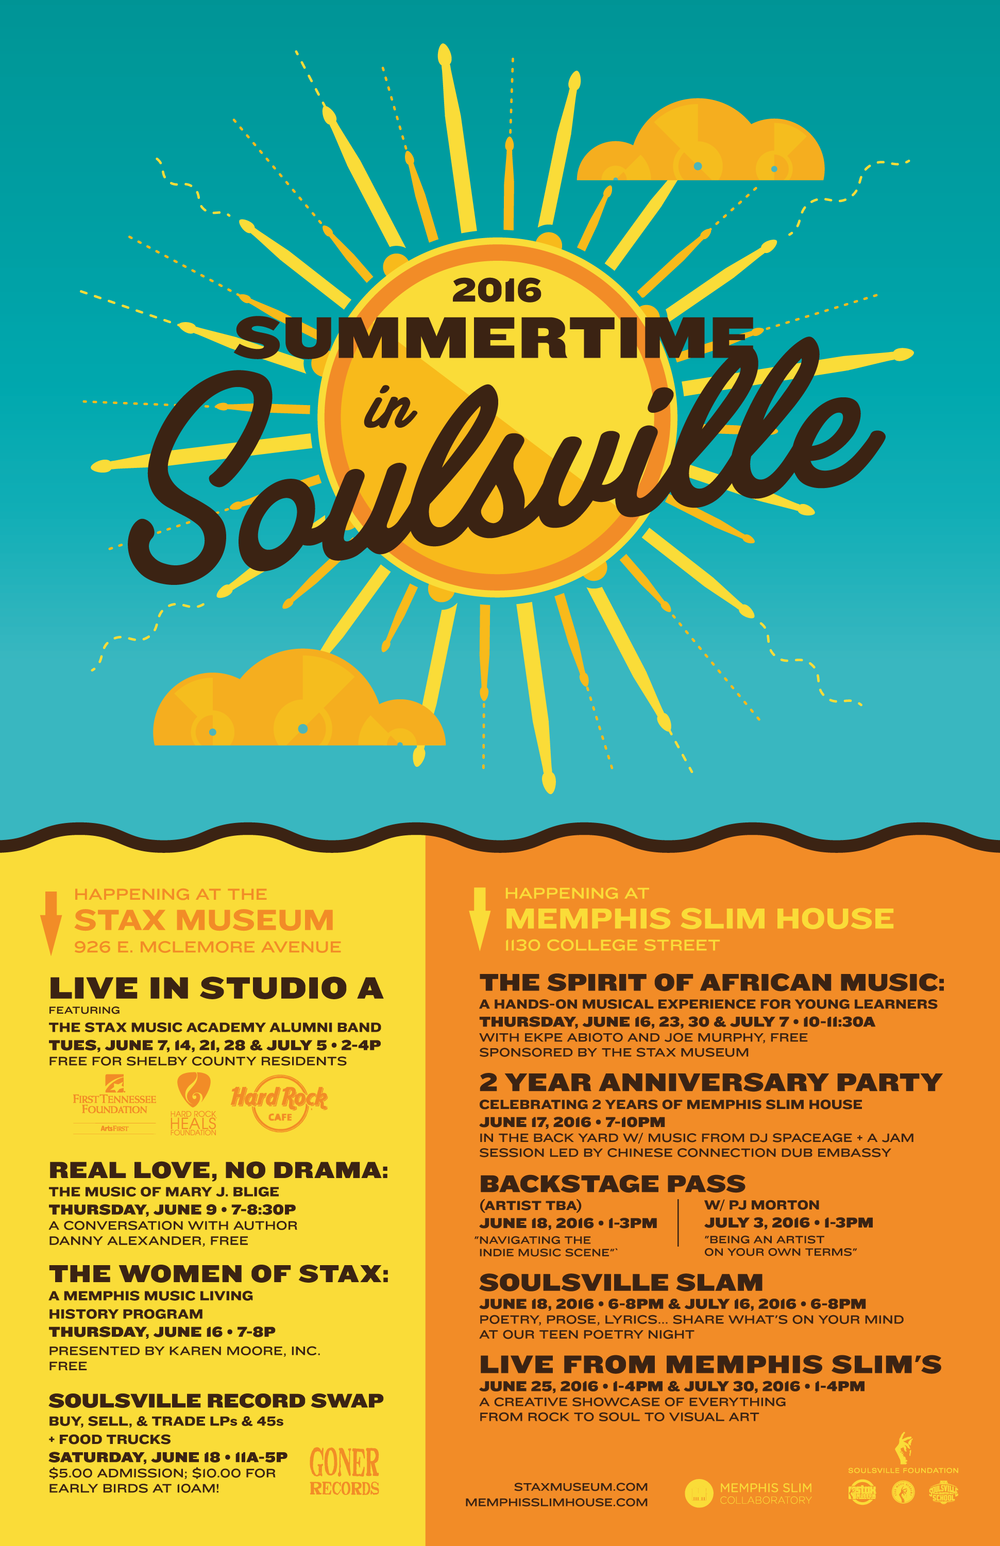 summertime-soulsville-web-big.png